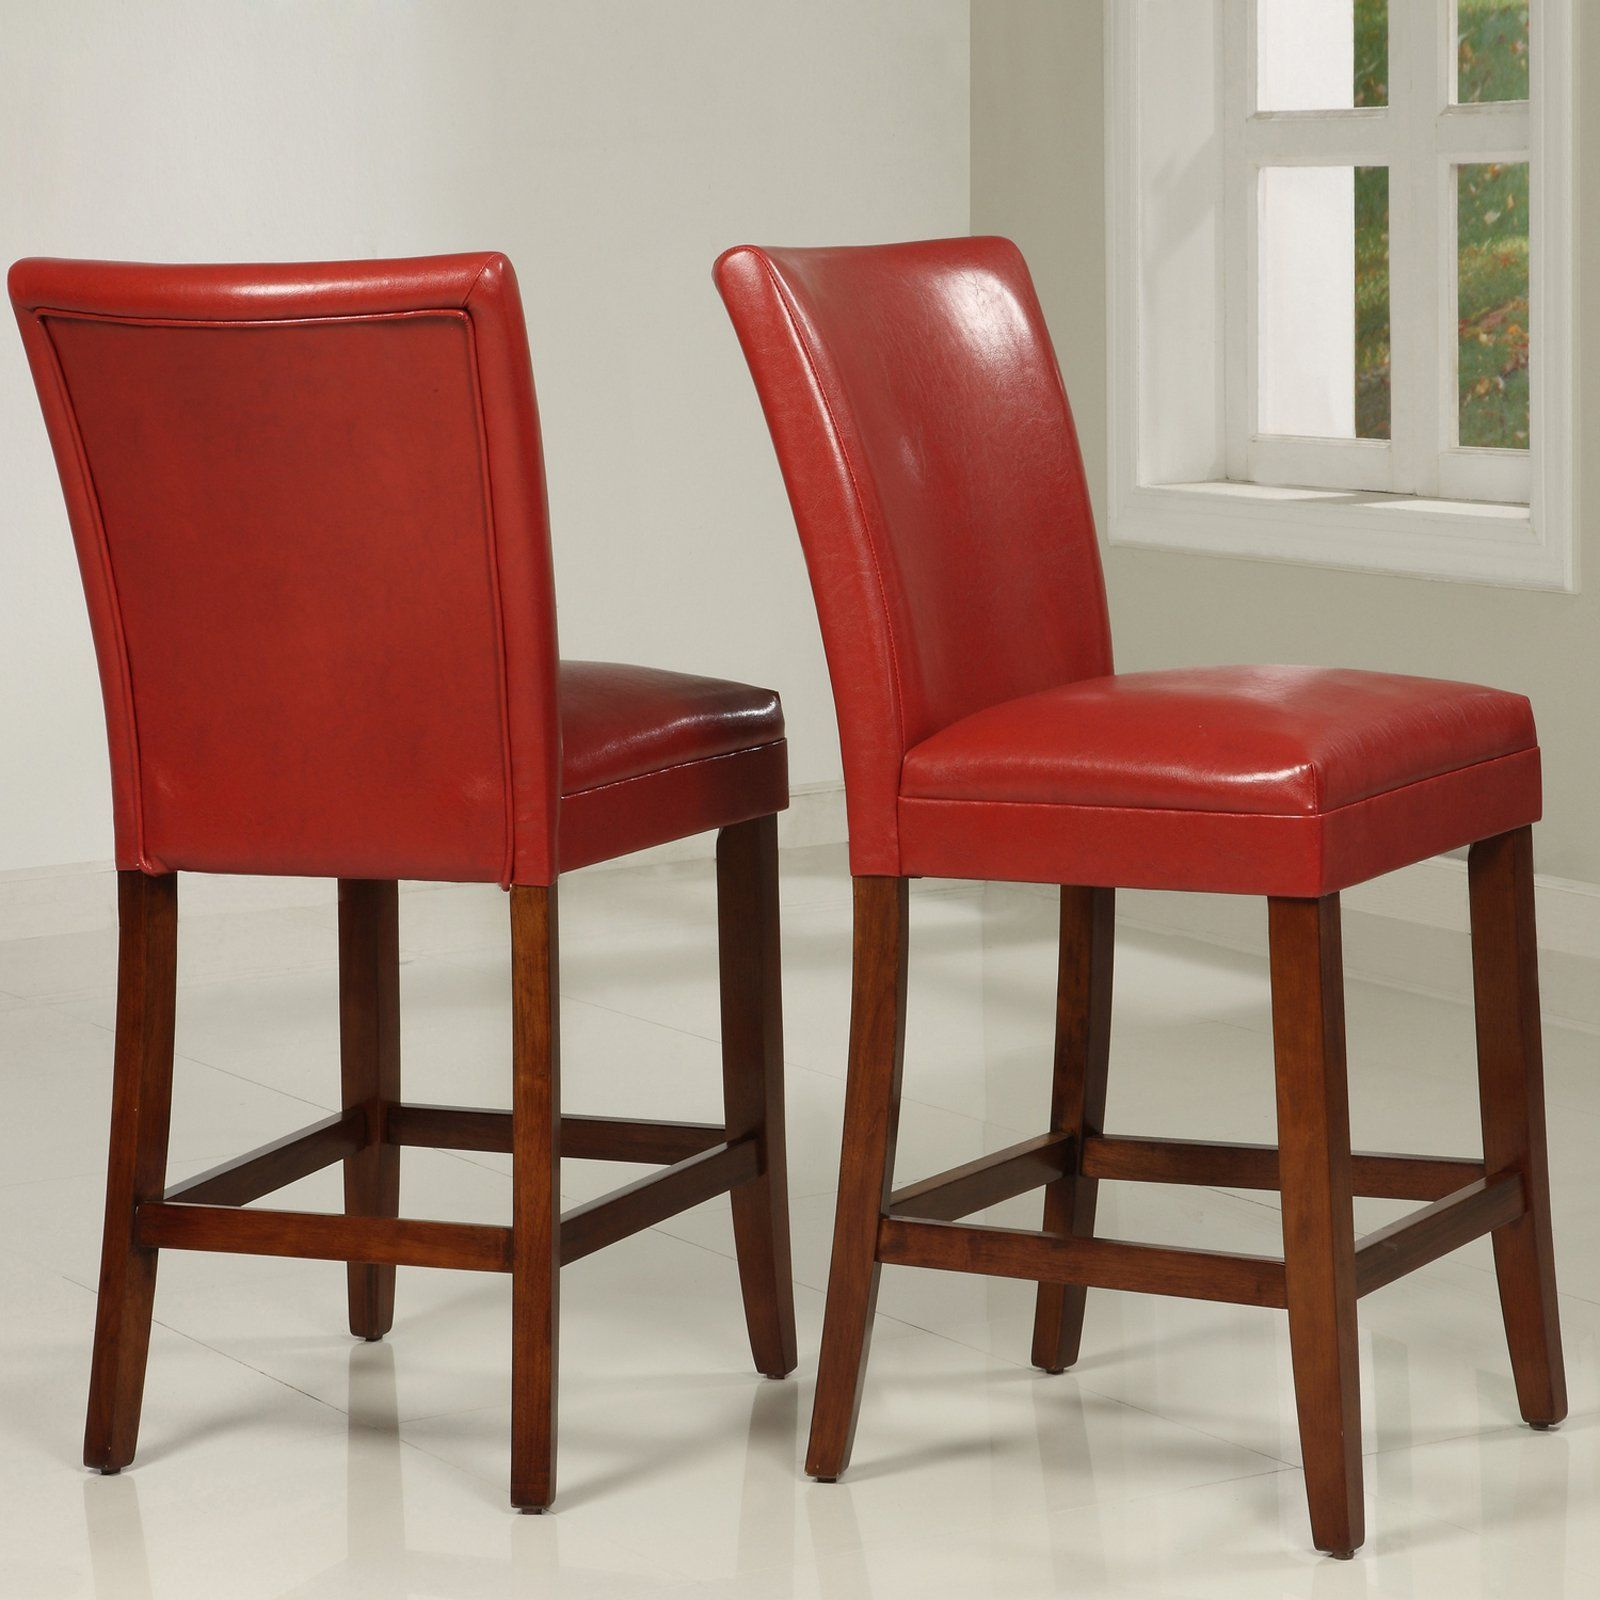 Weston home achillea counter height chairs set of 2 721wr 24 leather chairsleather dining room chairsred